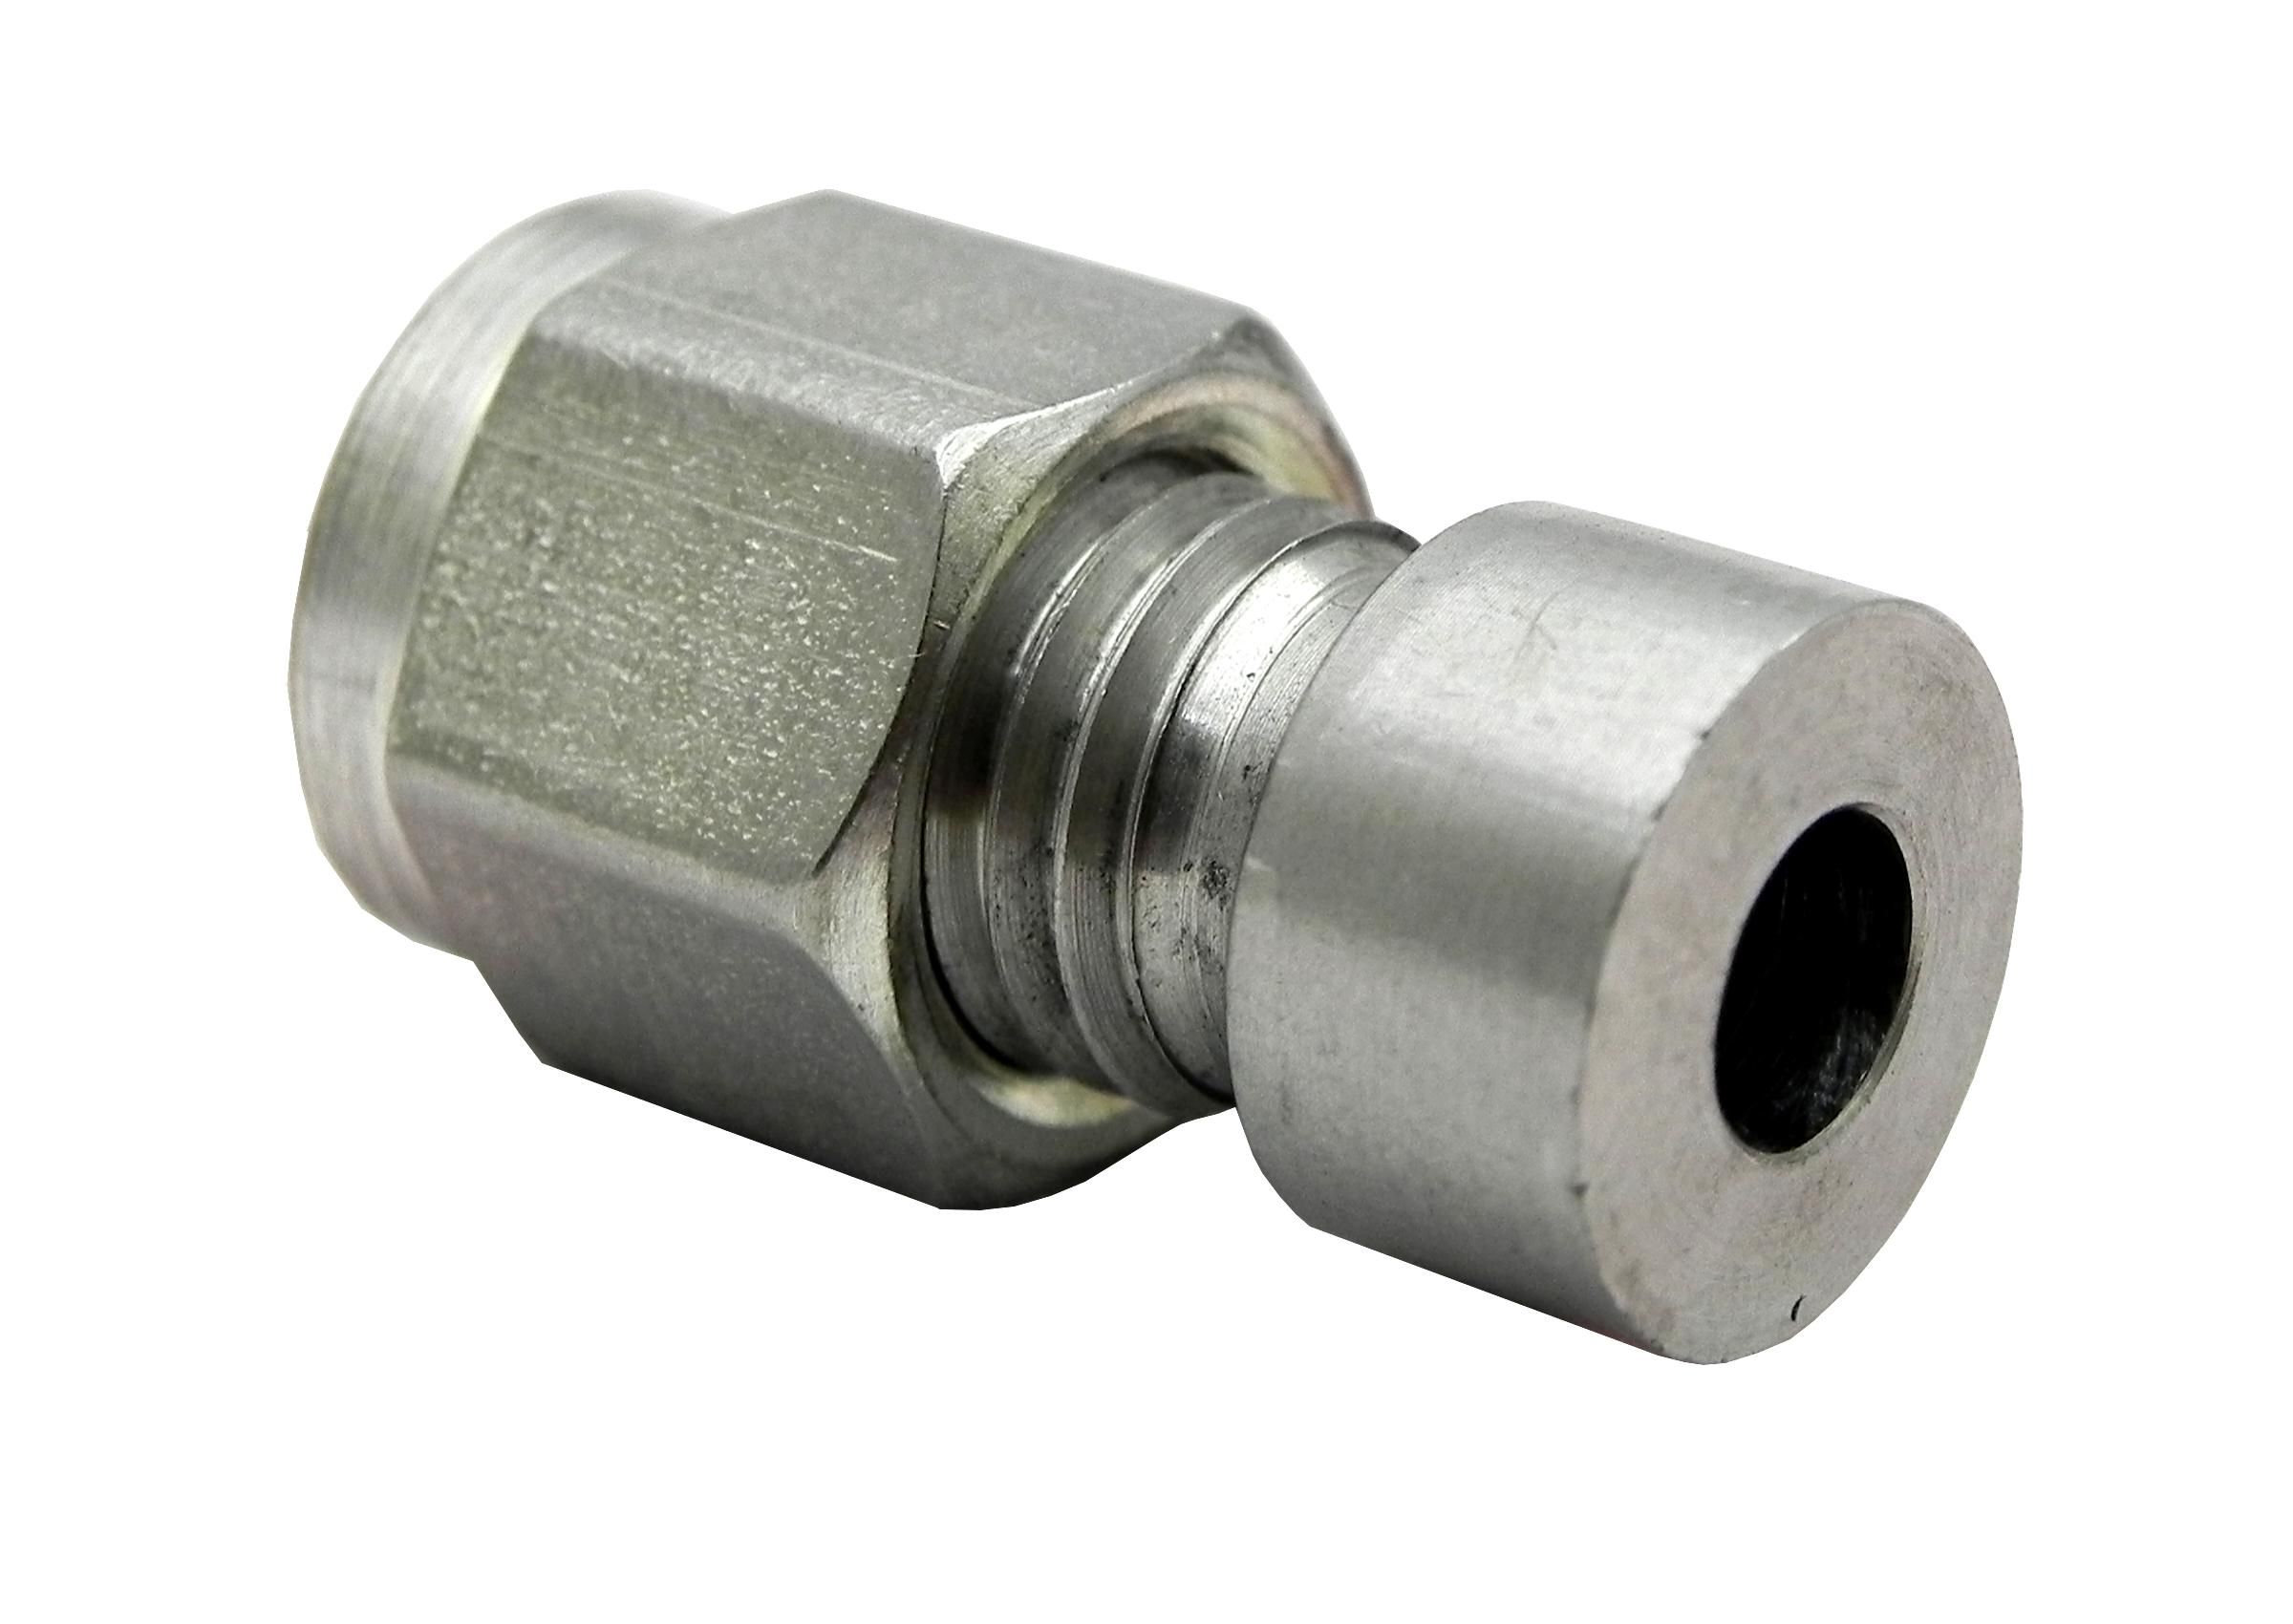 Thermocouple compression fitting adapters direct weld